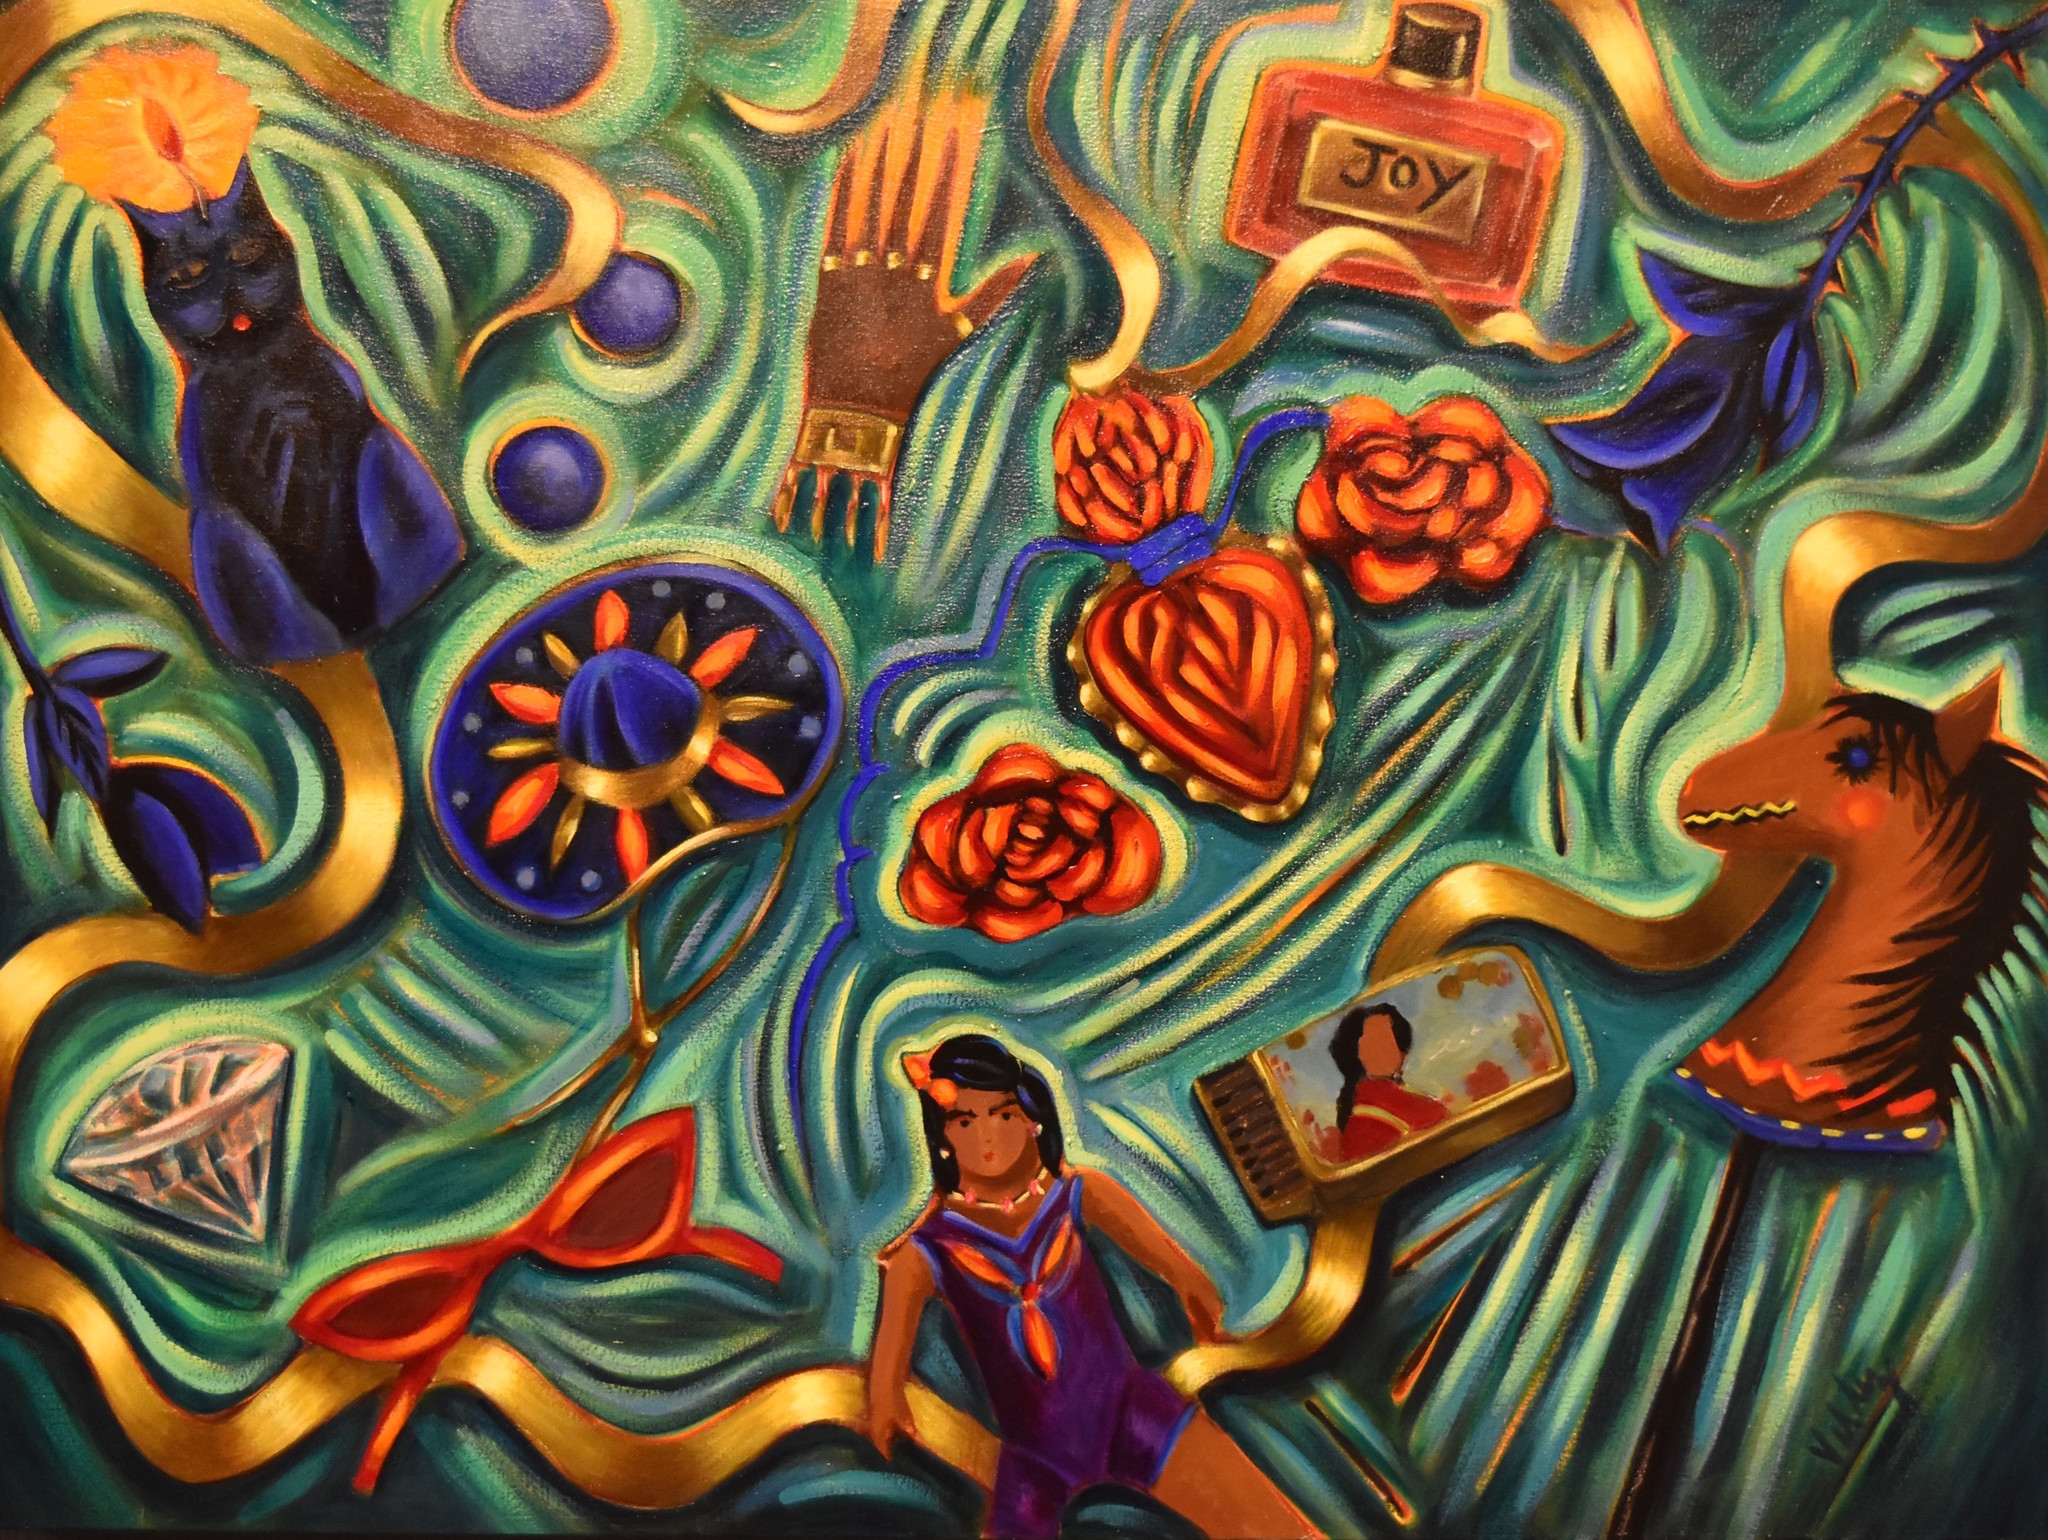 """Farewell,"" 2006, by Patssi Valdez, at the Millard Sheets Art Center"